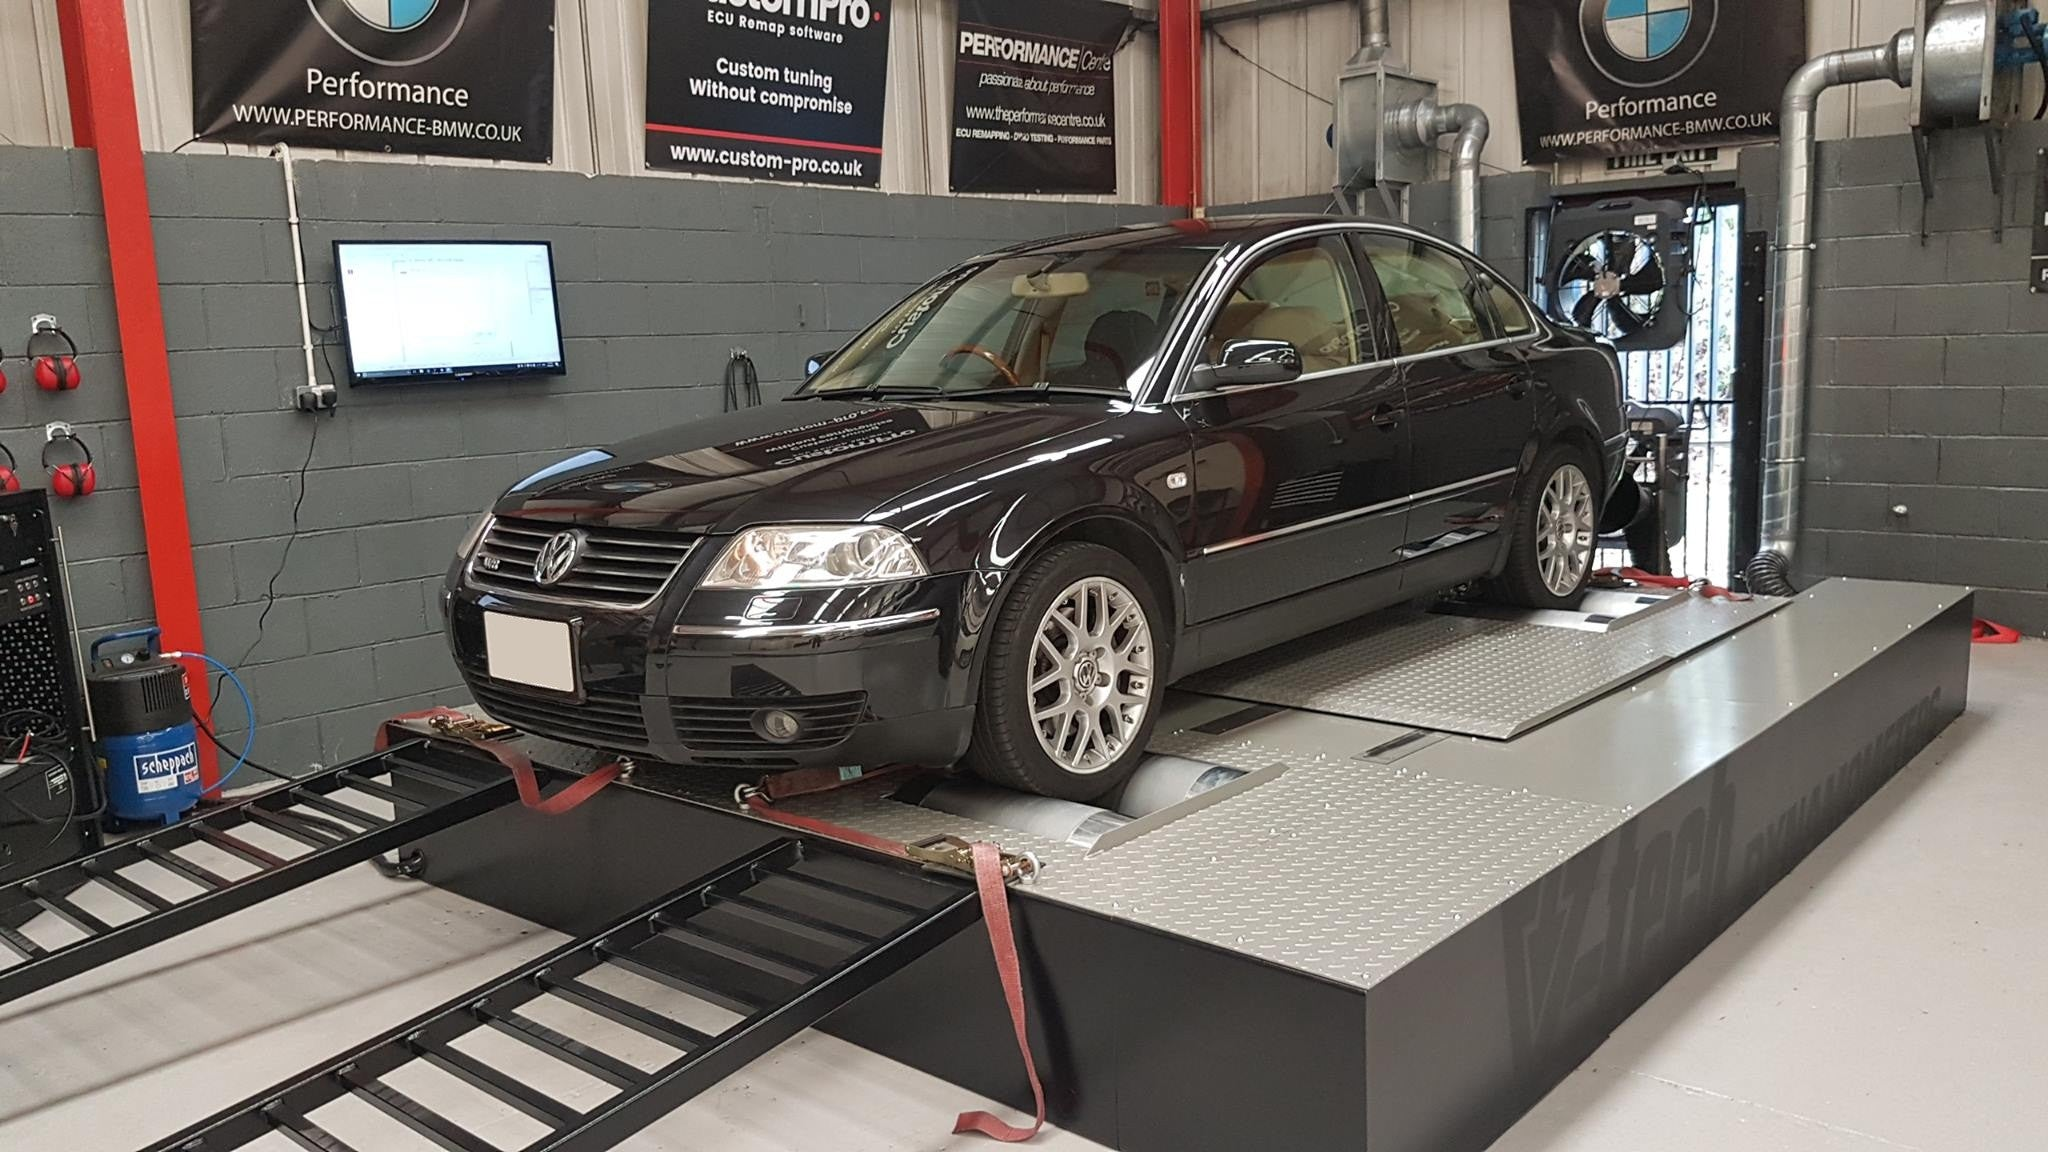 Volkswagen Passat W8 4.0 - CustomPro remap